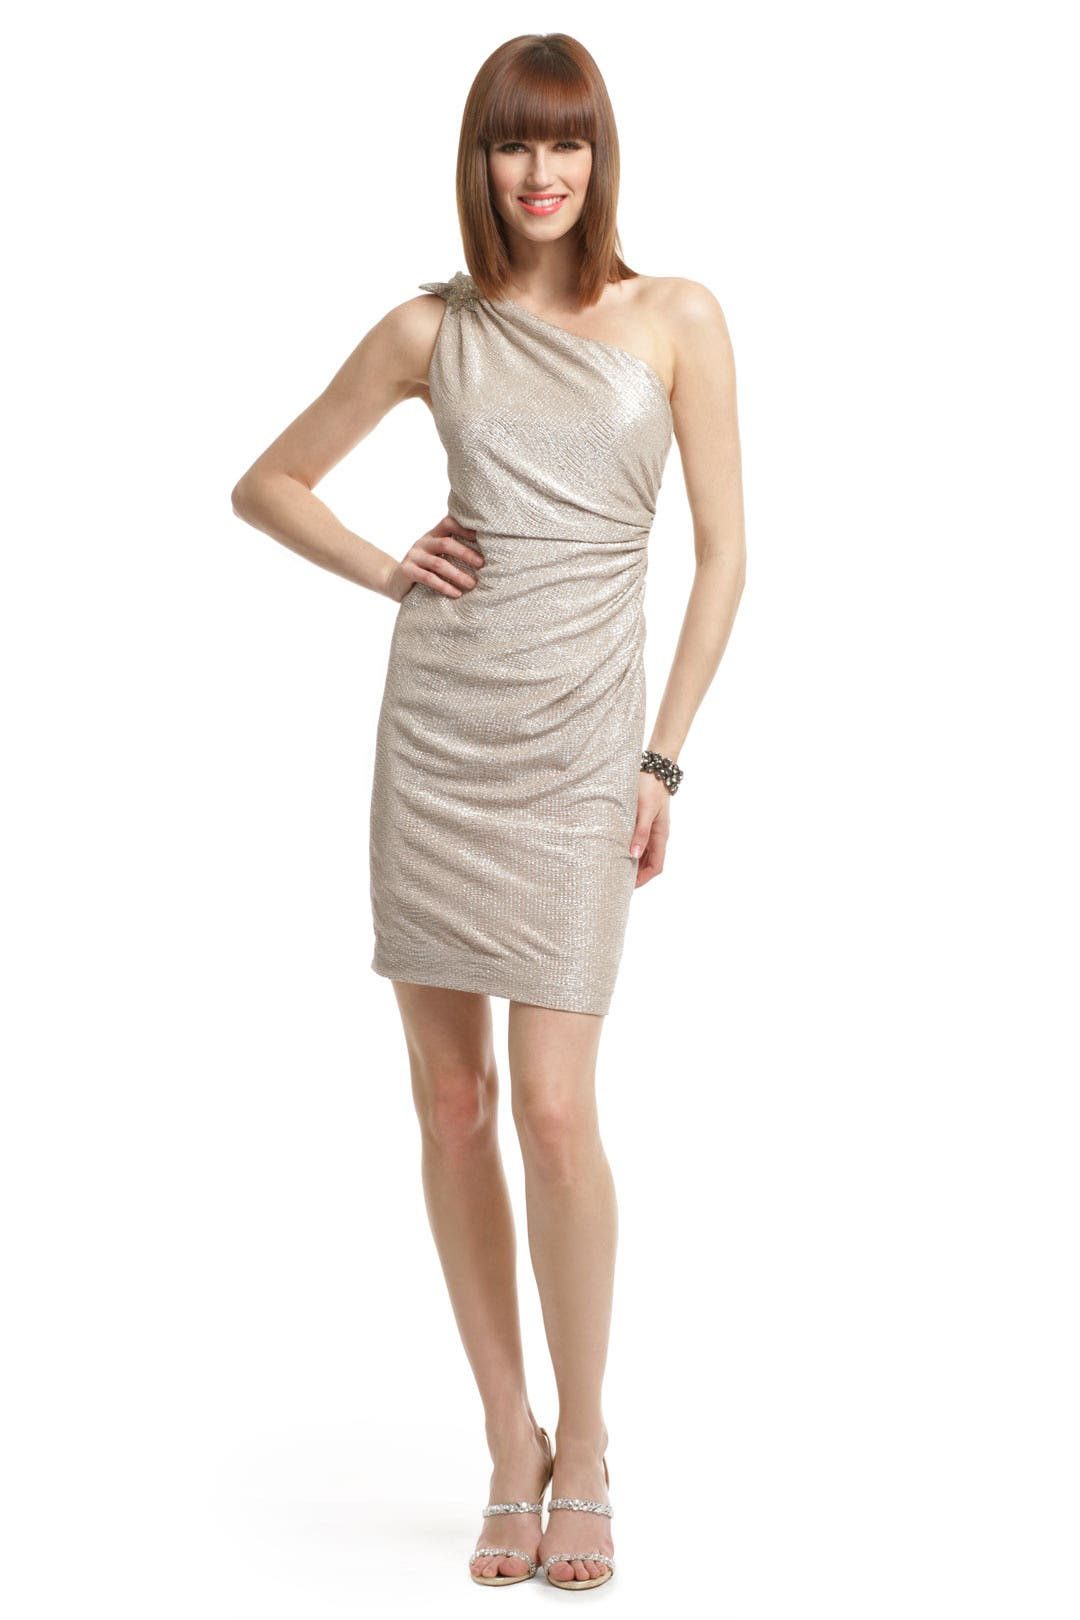 You See Me I See You Dress by David Meister